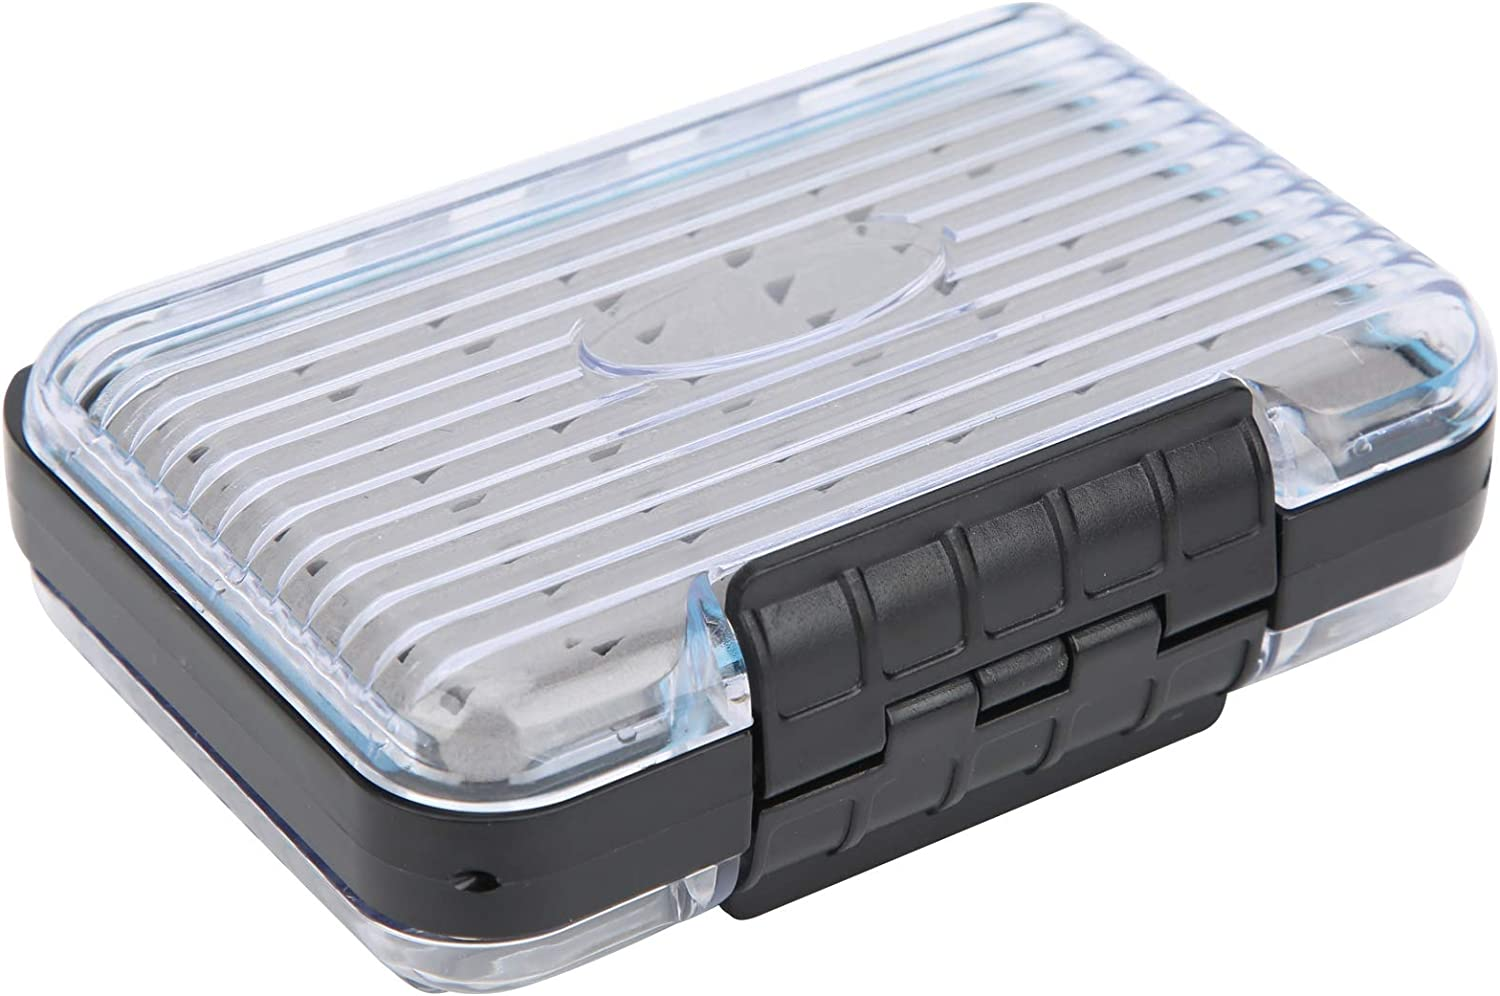 Lightweight Fly Fishing Transparent Box Finally popular brand Lures San Diego Mall